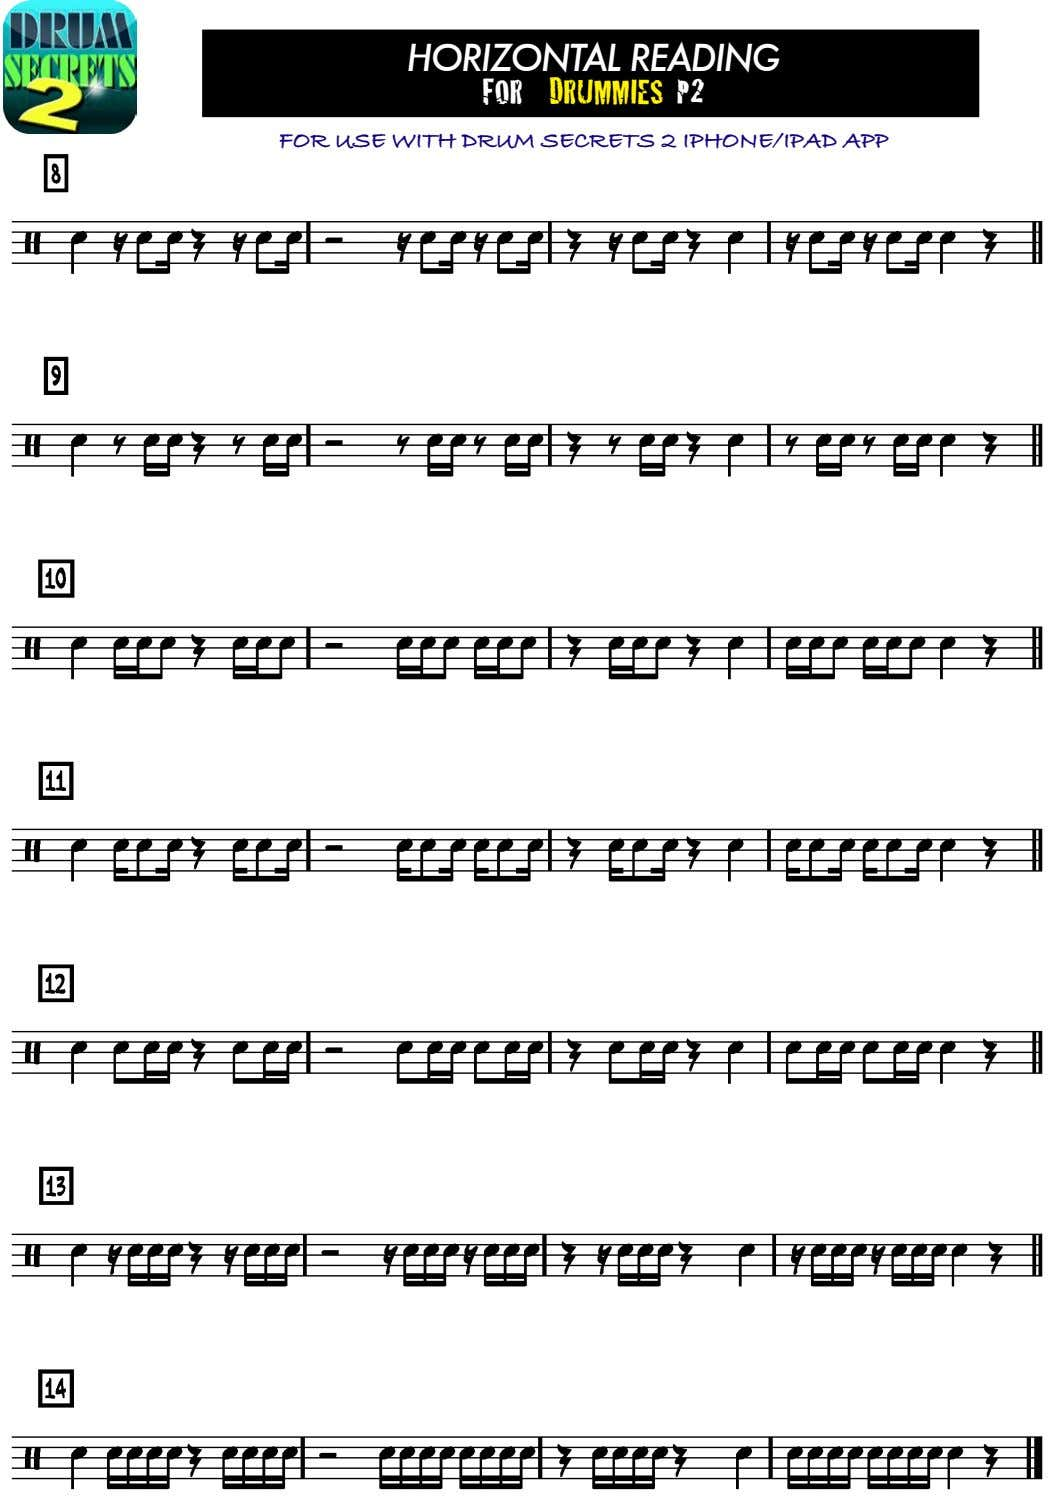 HORIZONTAL READING FOR DRUMMIES P2 FOR USE WITH DRUM SECRETS 2 IPHONE/IPAD APP